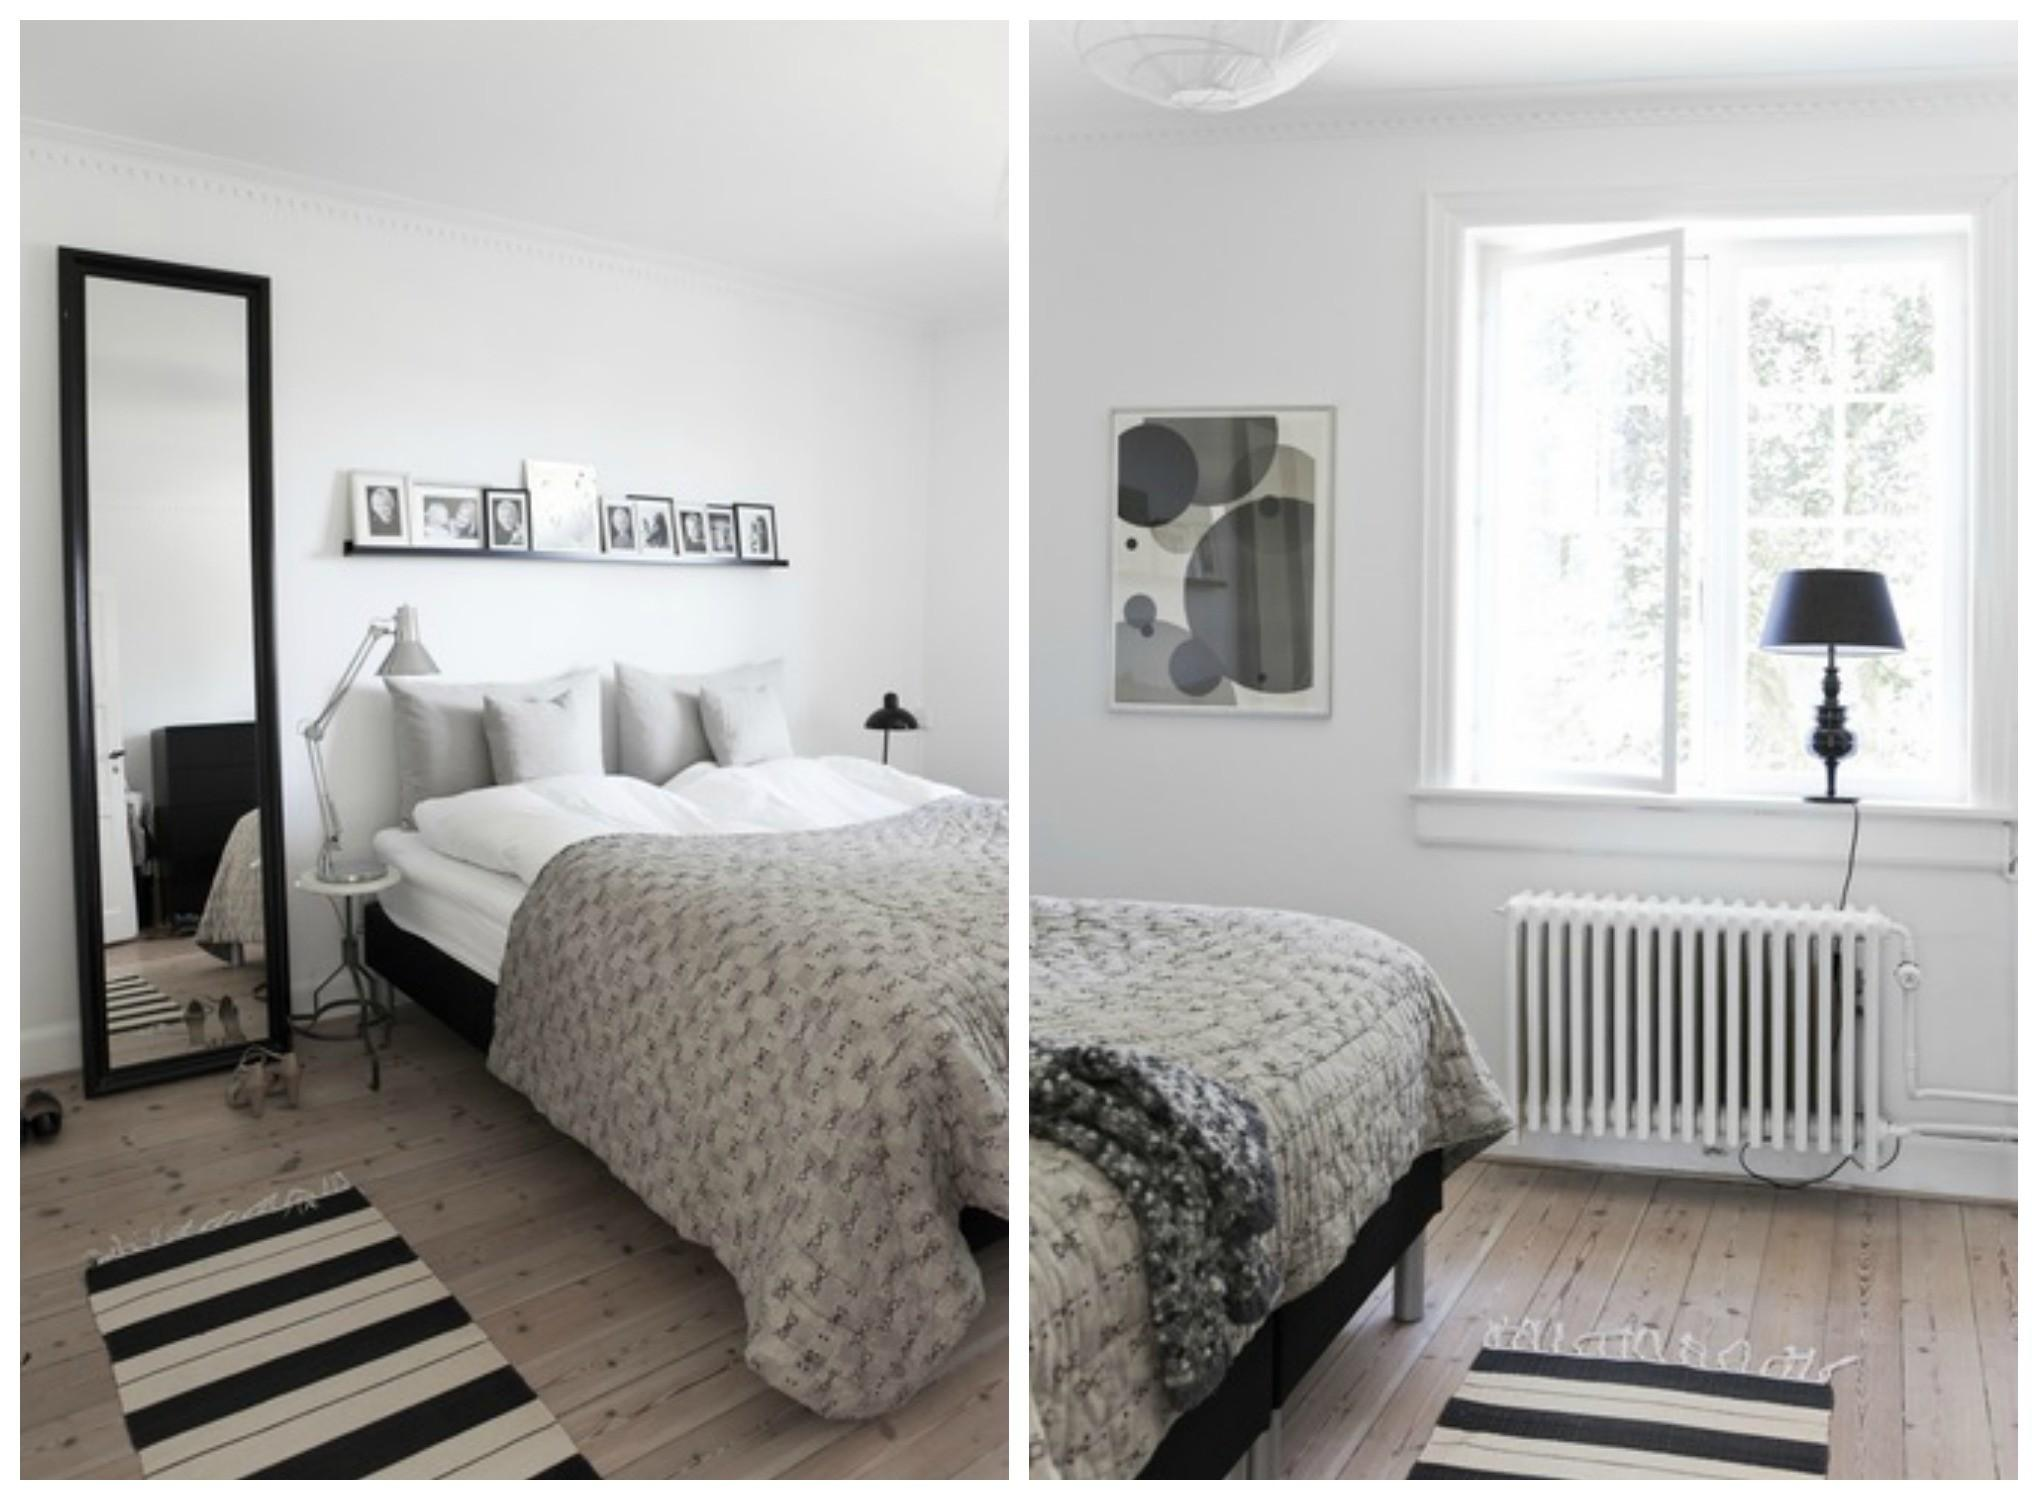 Interior Scandinavian Design Bedroom